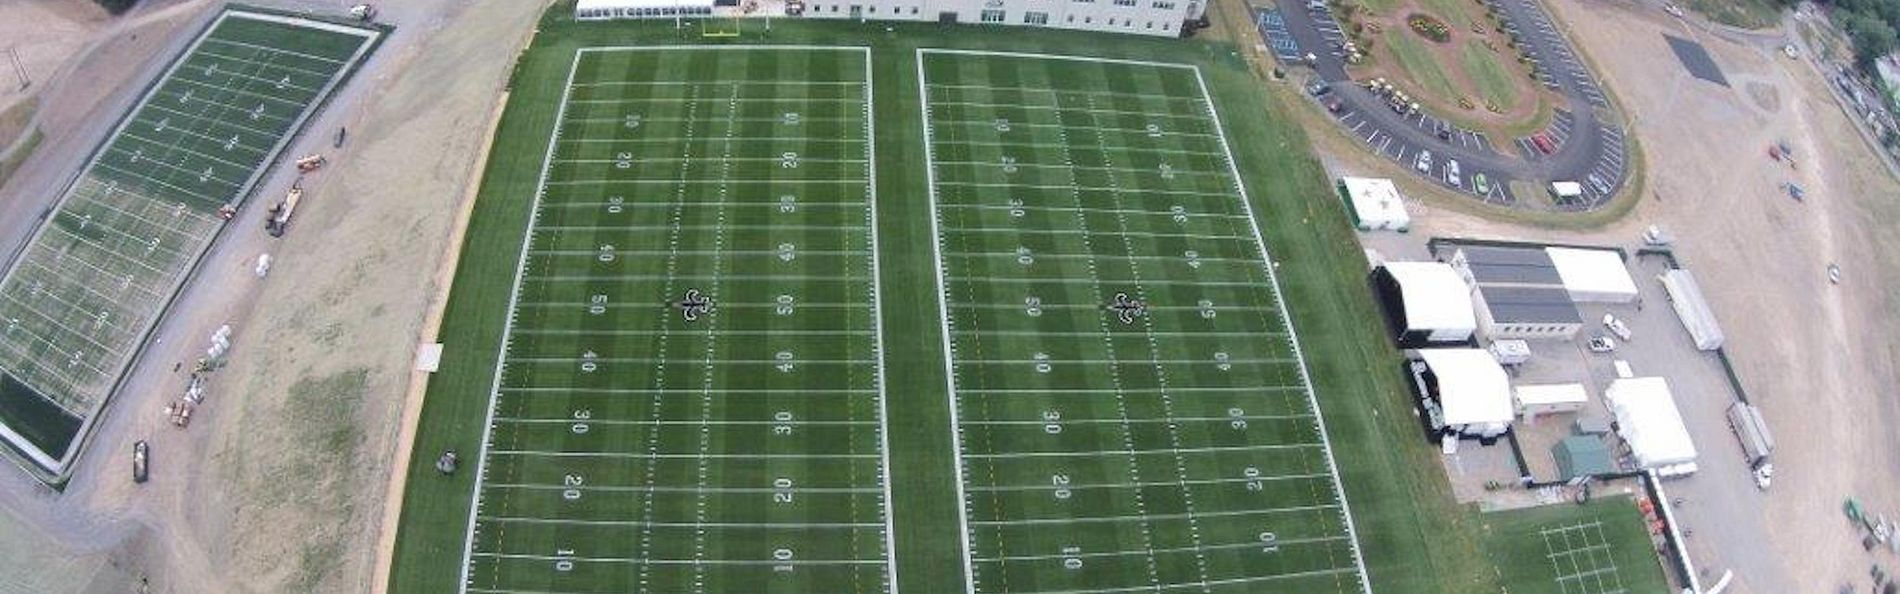 New Orleans Saints practice football fields at AdvoCare Sports Performance Center